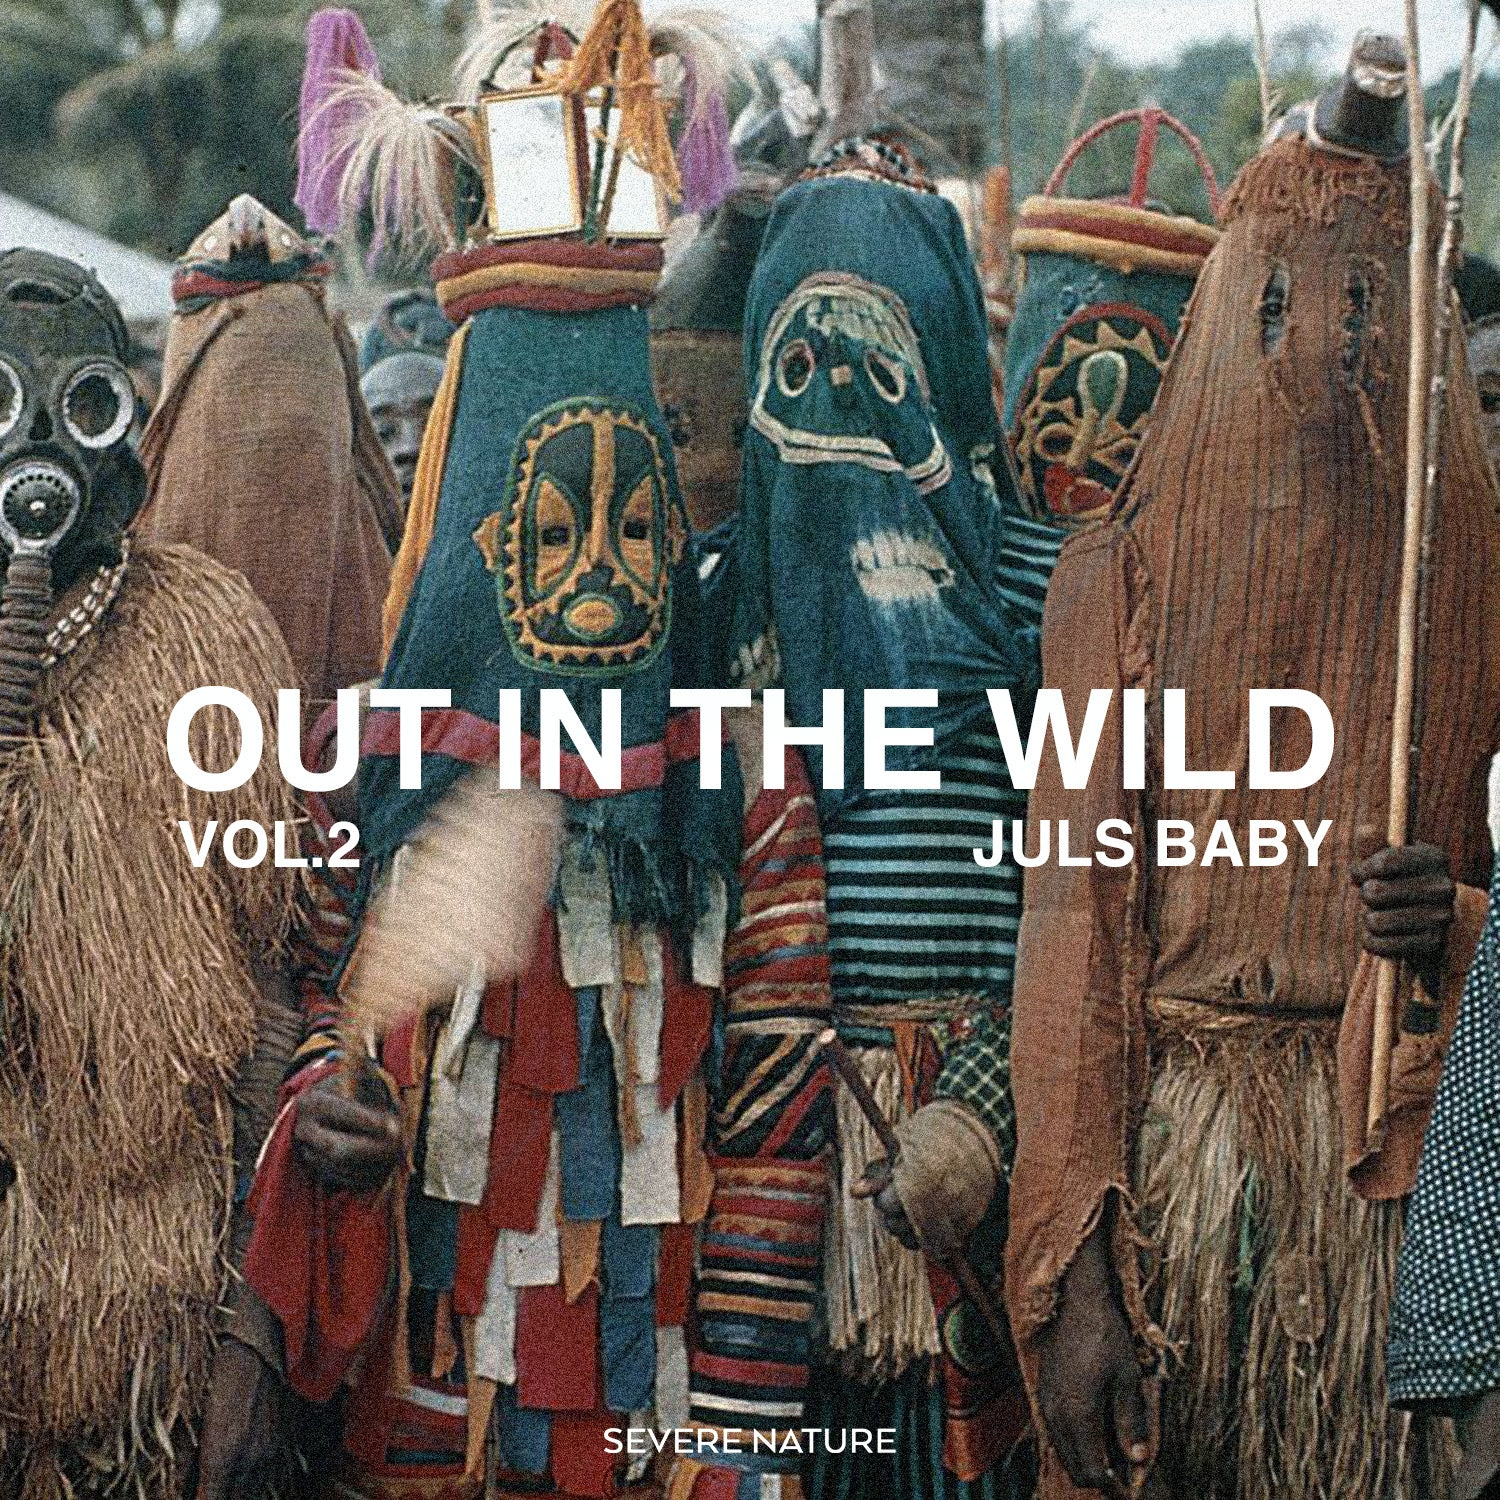 Out In The Wild Vol. 2 Curated by Juls